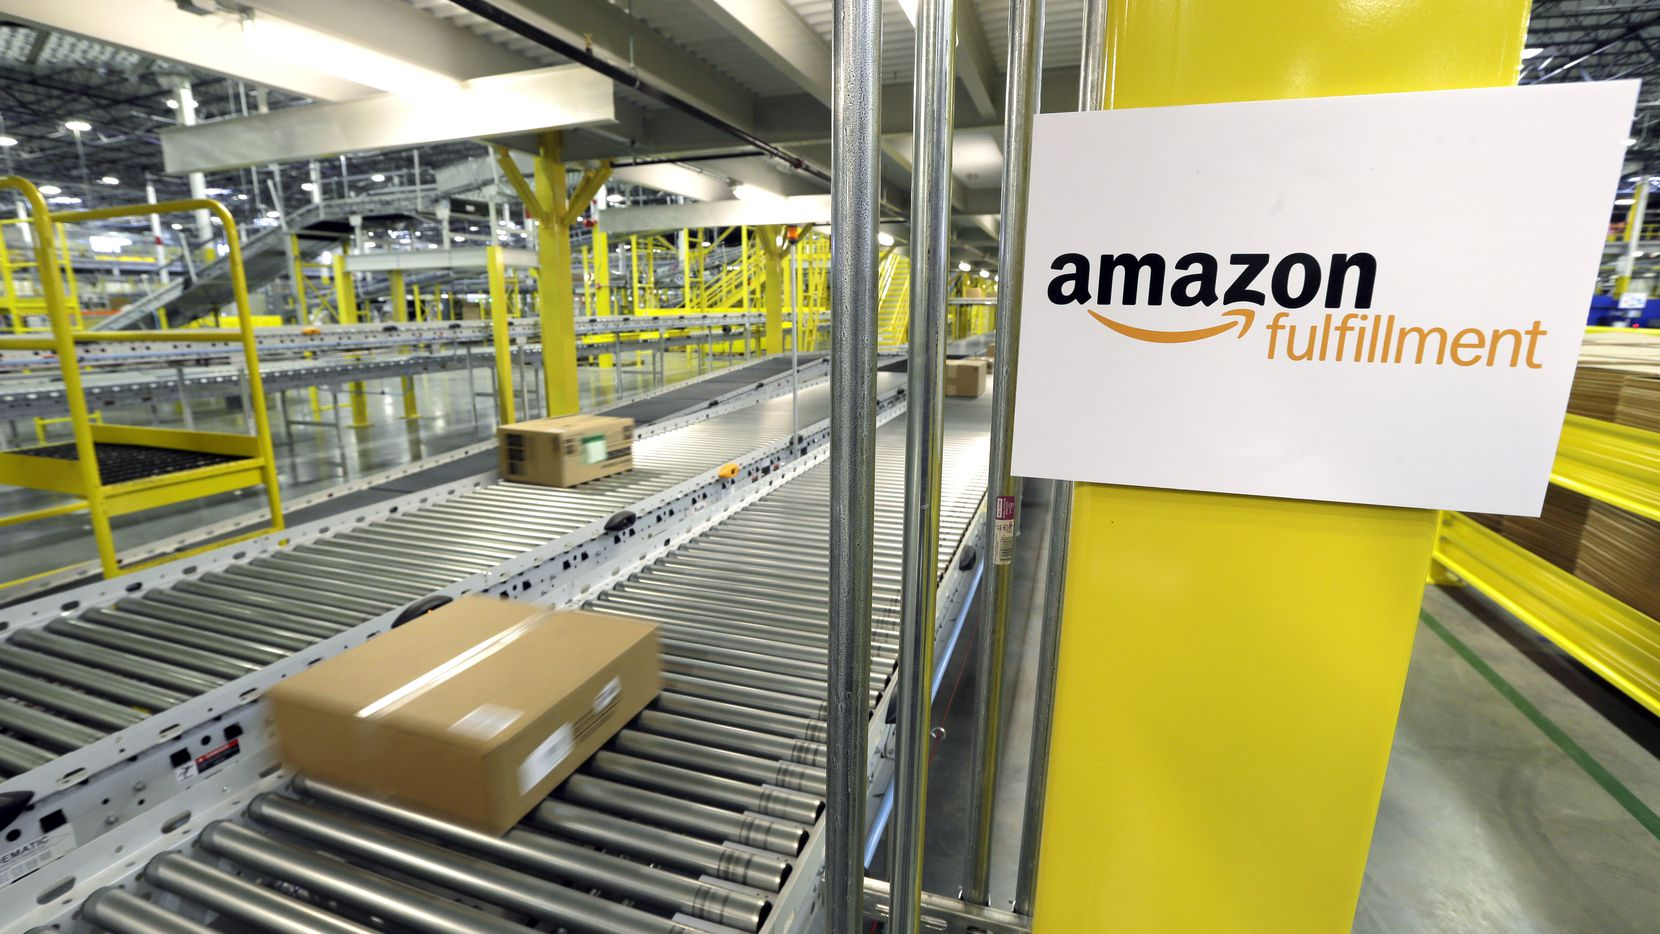 A package moves along a conveyer belt at an Amazon.com fulfillment center in DuPont, Wash.